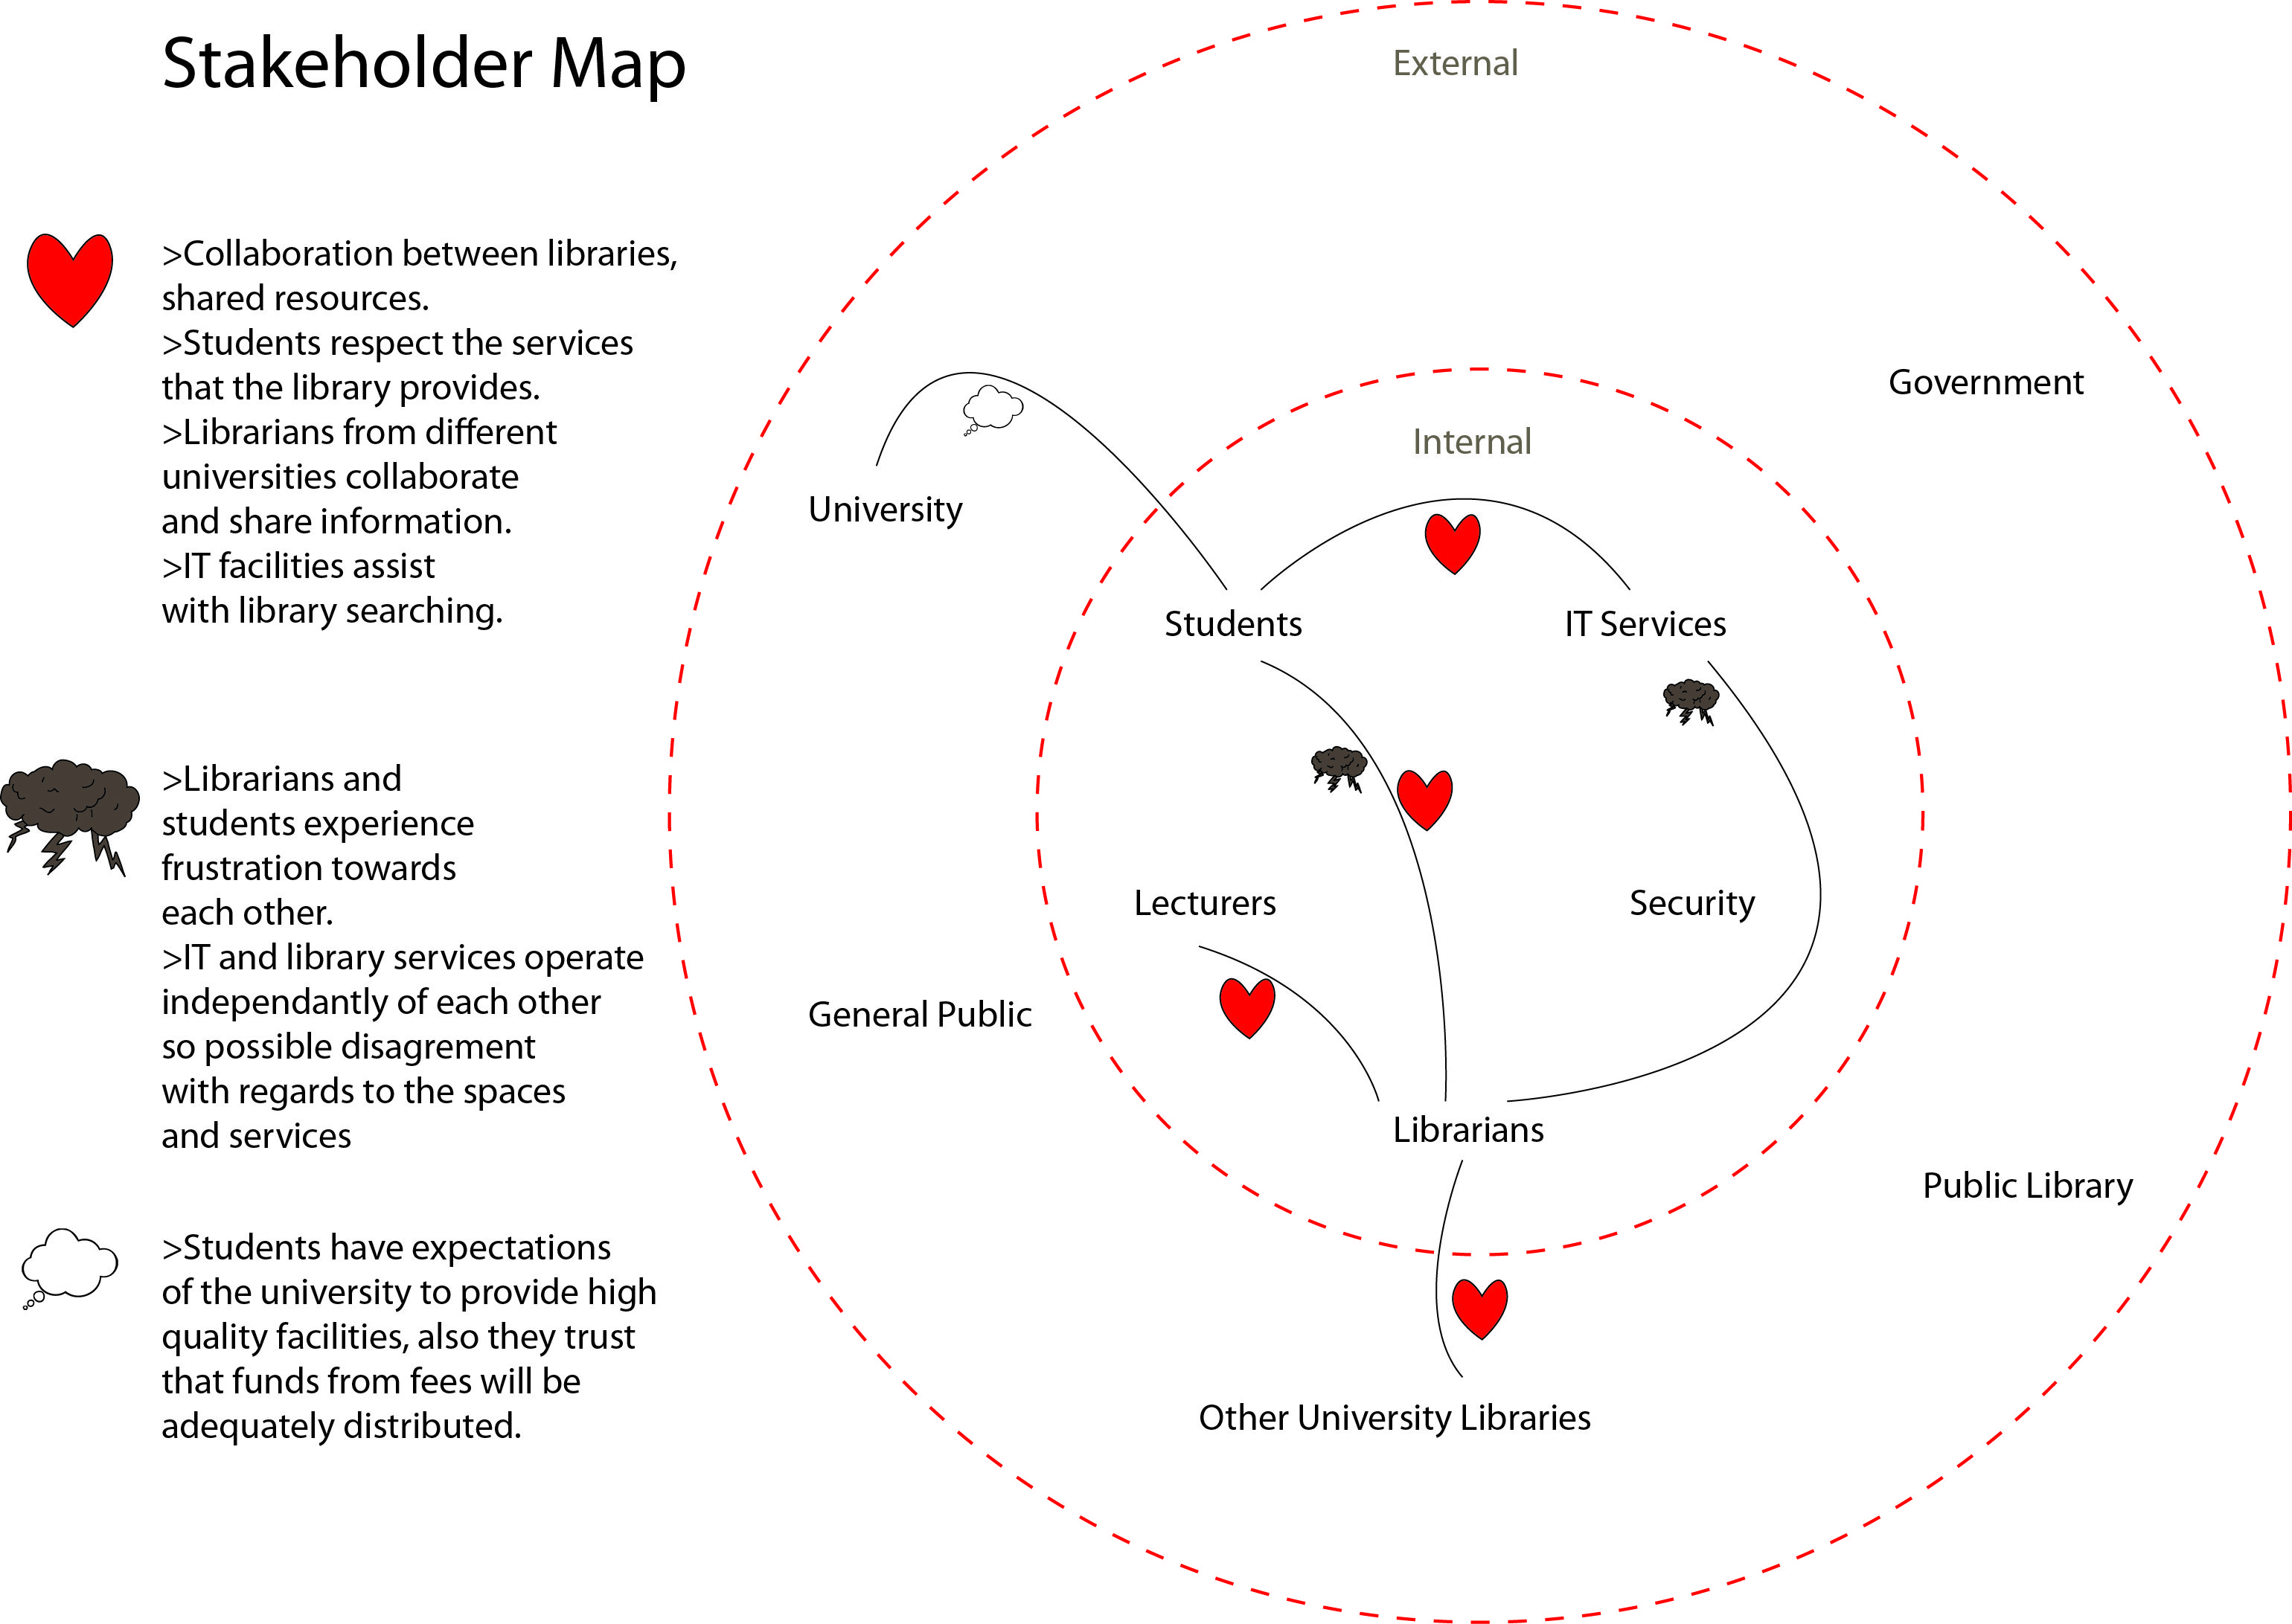 hight resolution of stakeholder map yahoo image search results yahoo images line chart image search